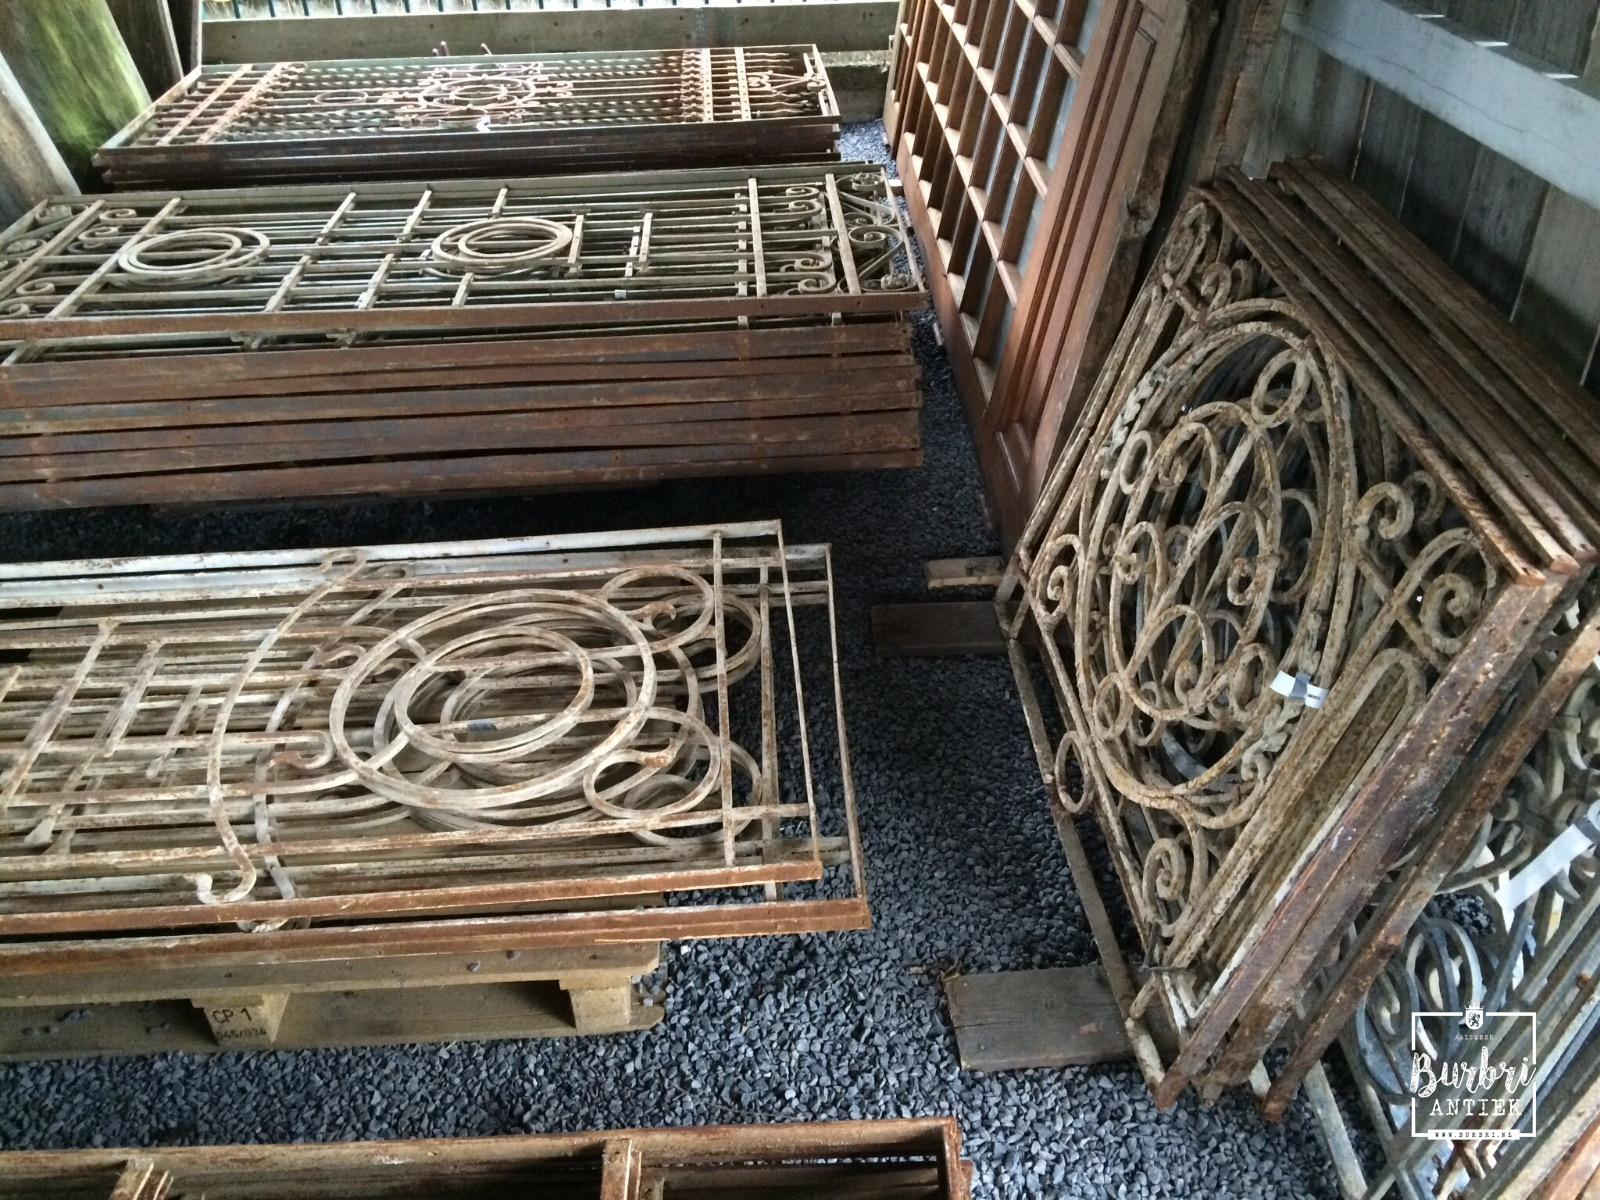 More available France Antique fencing old iron fence   Hekwerken   Oude bouwmaterialen   Burbri